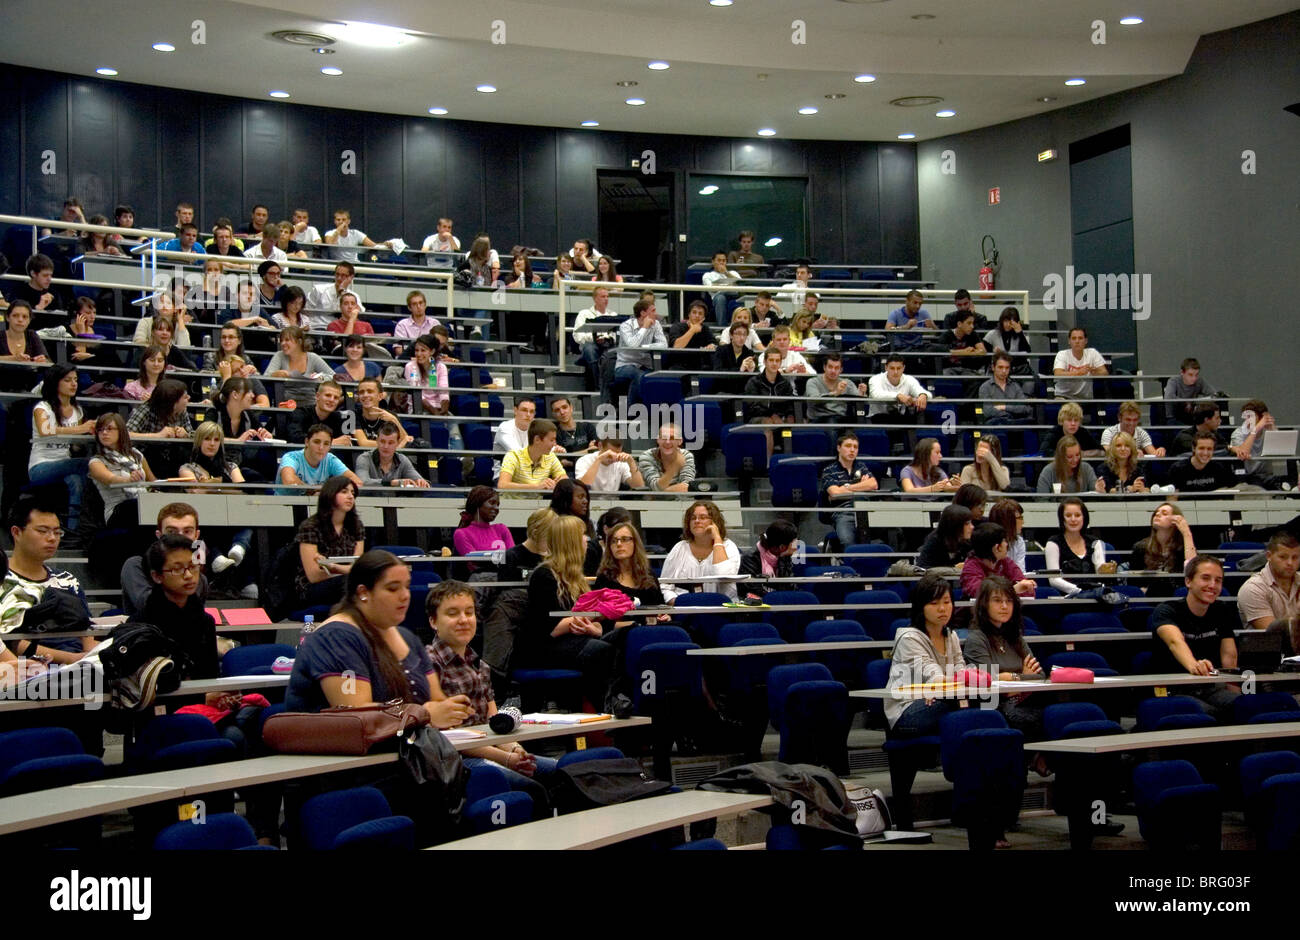 Students attend class in a lecture hall at the Paul Verlaine University in Metz, France. - Stock Image